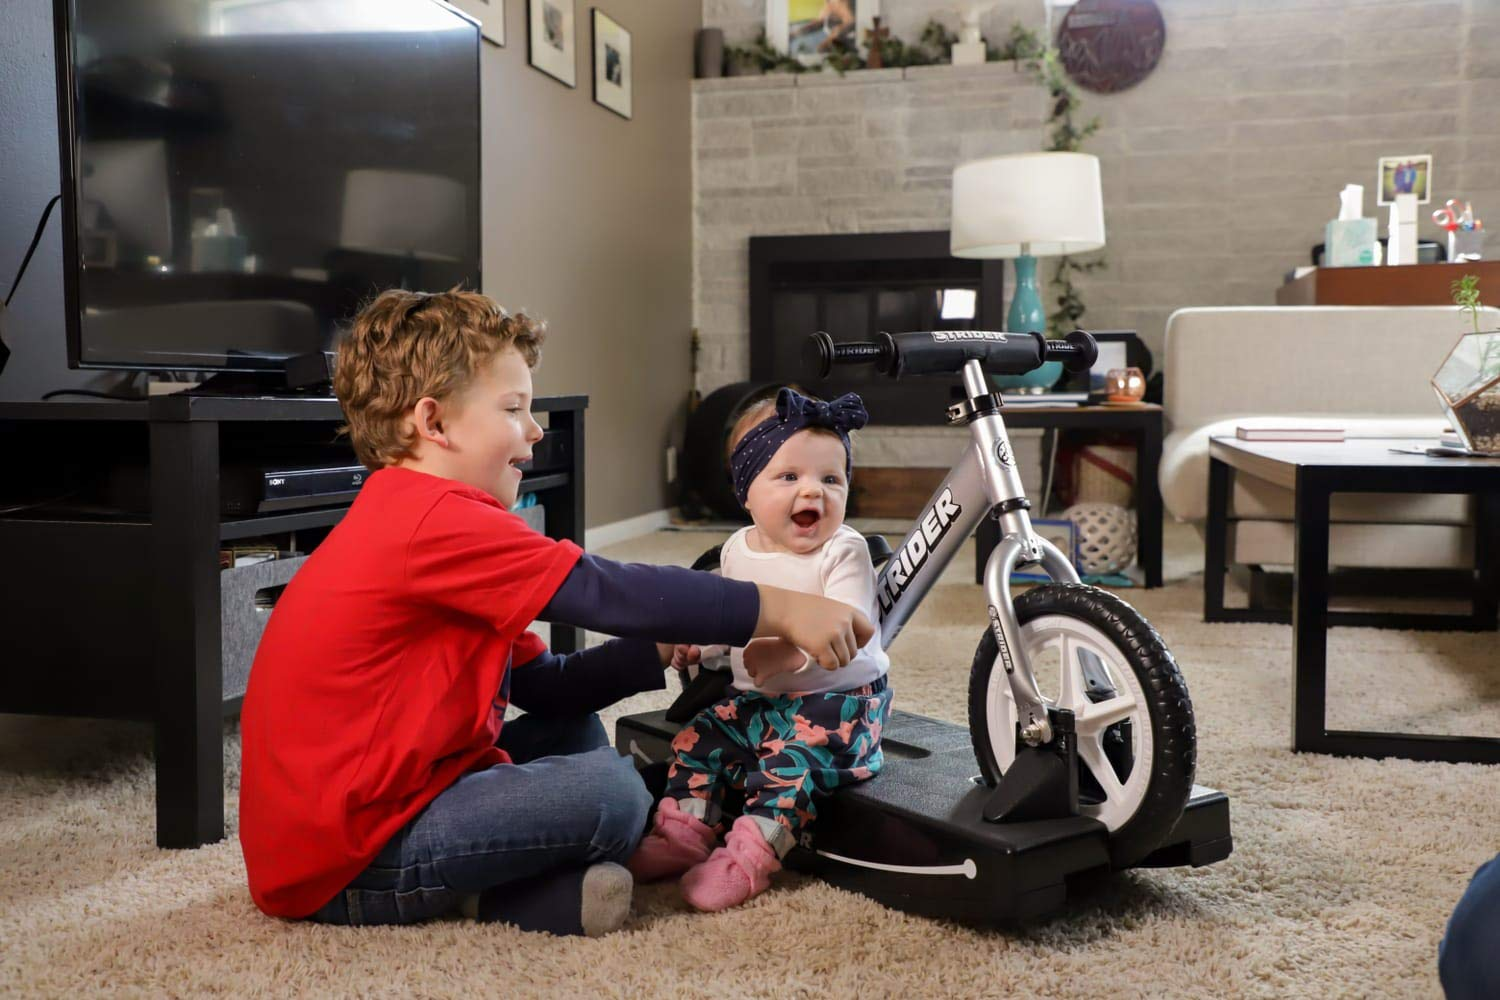 Strider - 12 Pro Baby Bundle with Balance Bike and Rocking Base, Ages 6 Months to 5 Years, Silver by Strider (Image #6)